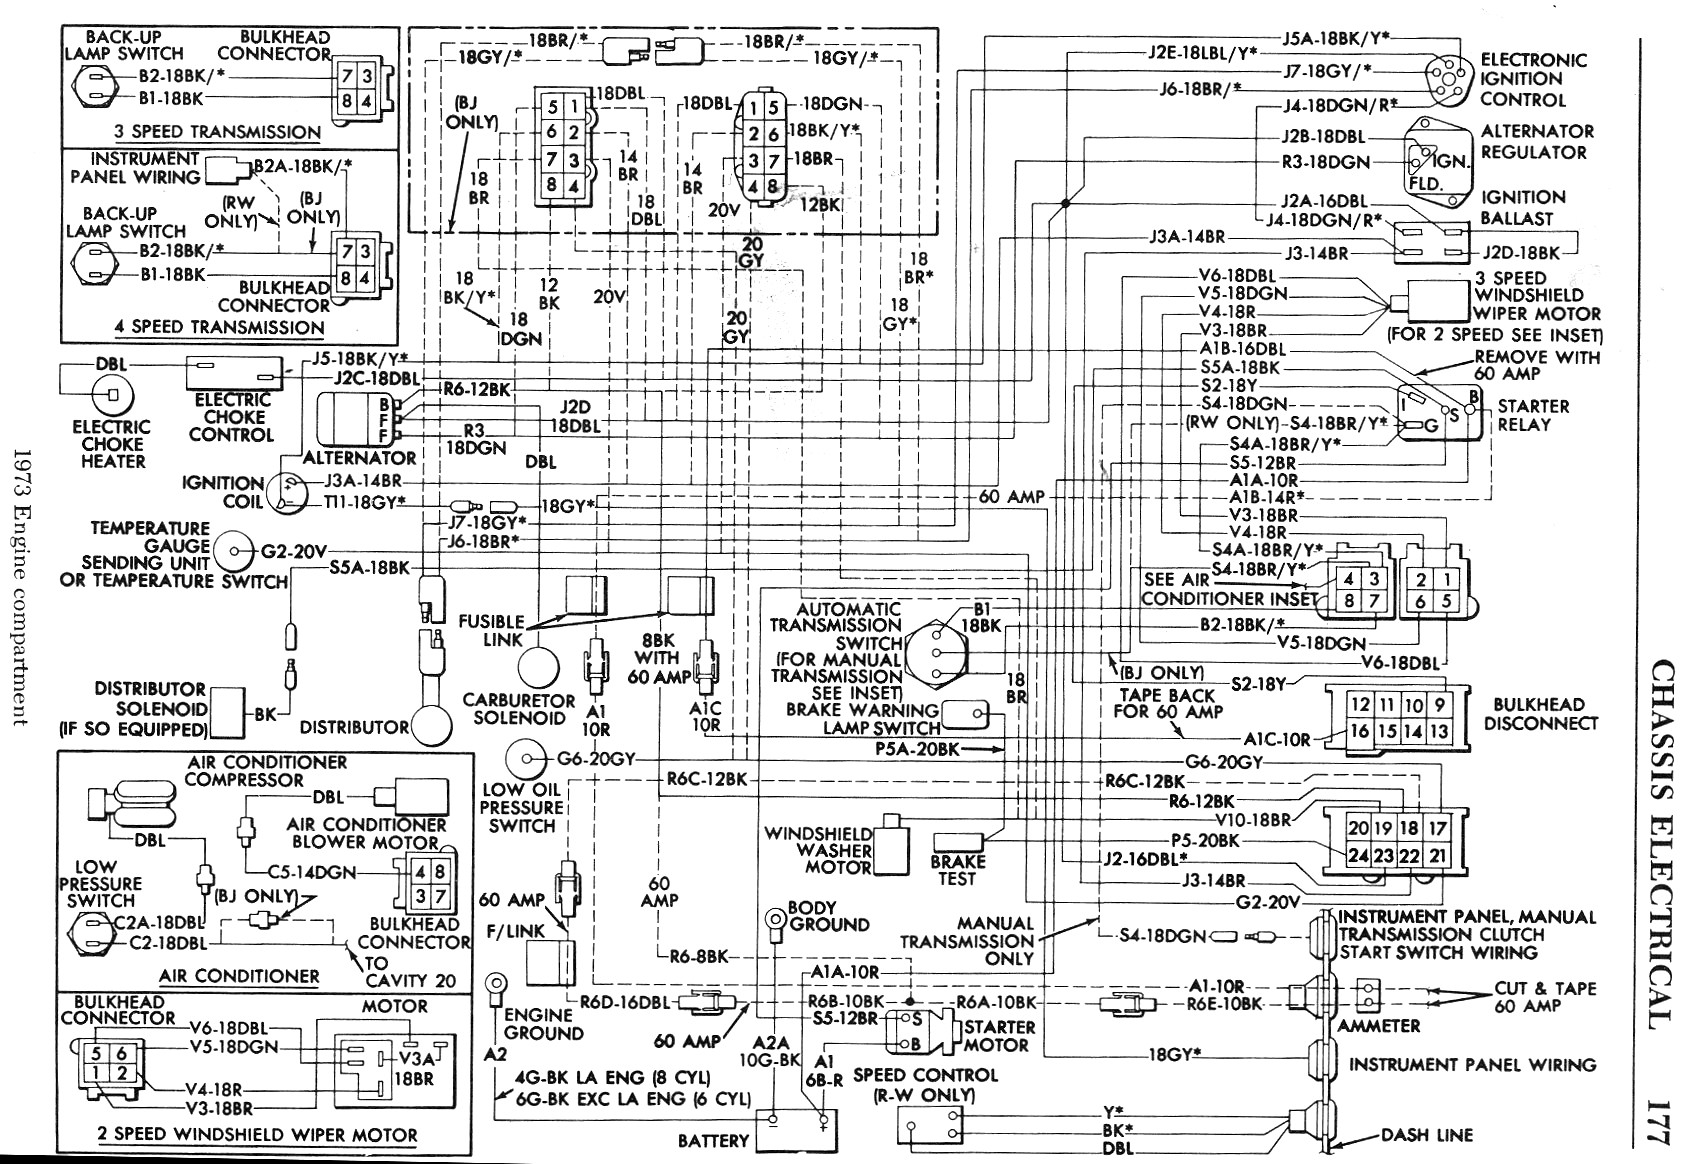 wiring diagram for 1973 plymouth duster get free image about wiring 1974 Dodge Dart Wiring Harness free plymouth wiring diagrams wiring library dodge dart alternator wiring diagram get free image